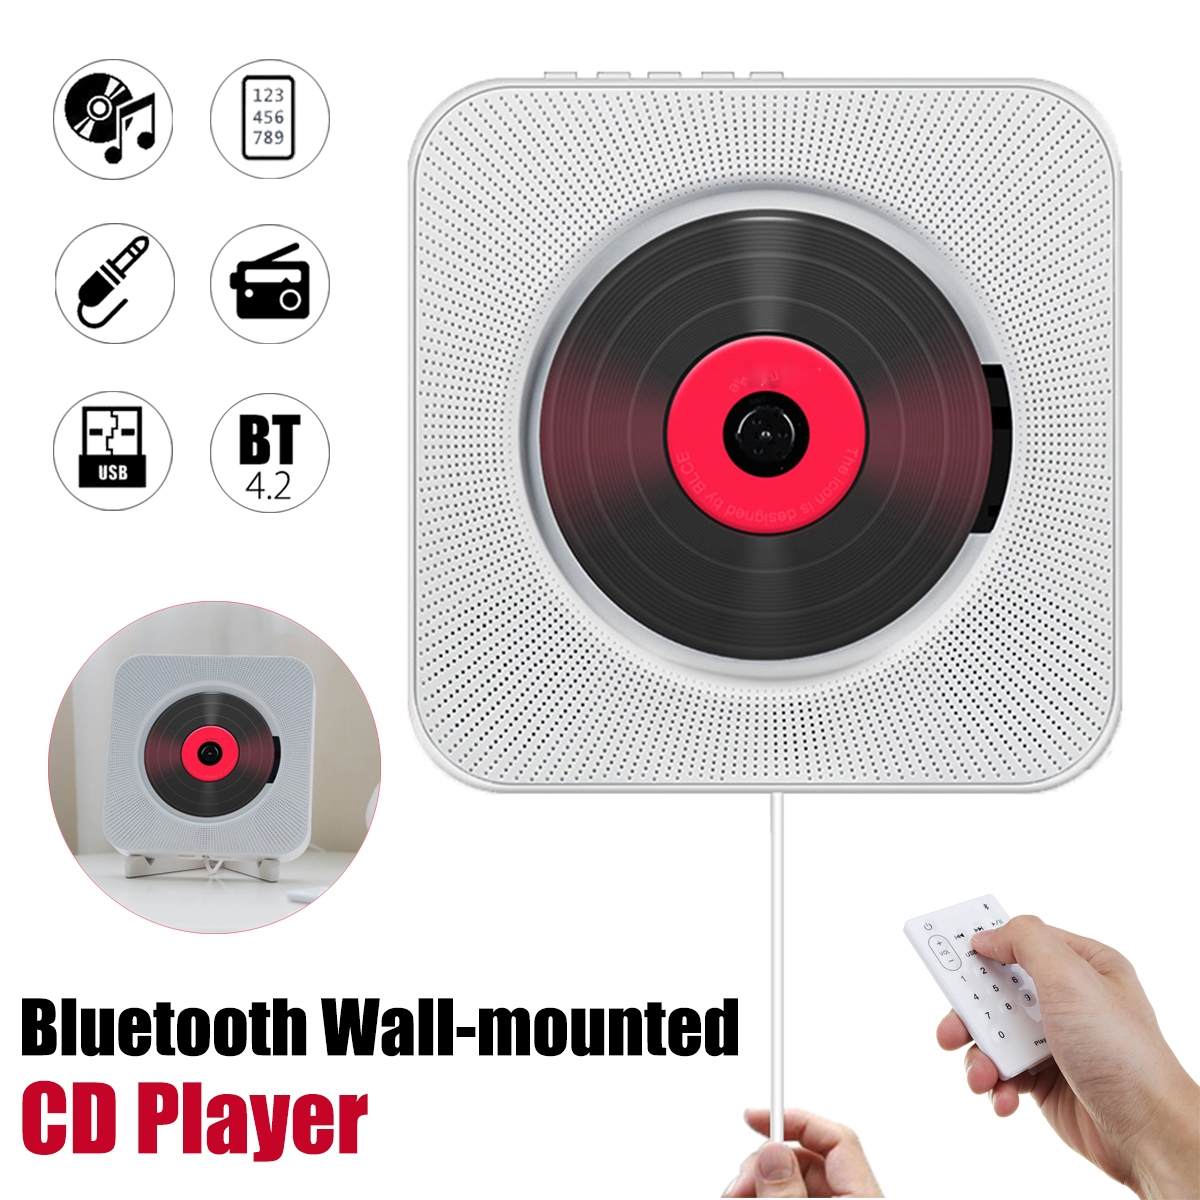 KC-808 Wall Mounted Bluetooth CD Player Portable Home Audio Box with Remote Control FM Radio Built-in HiFi Speakers MP3